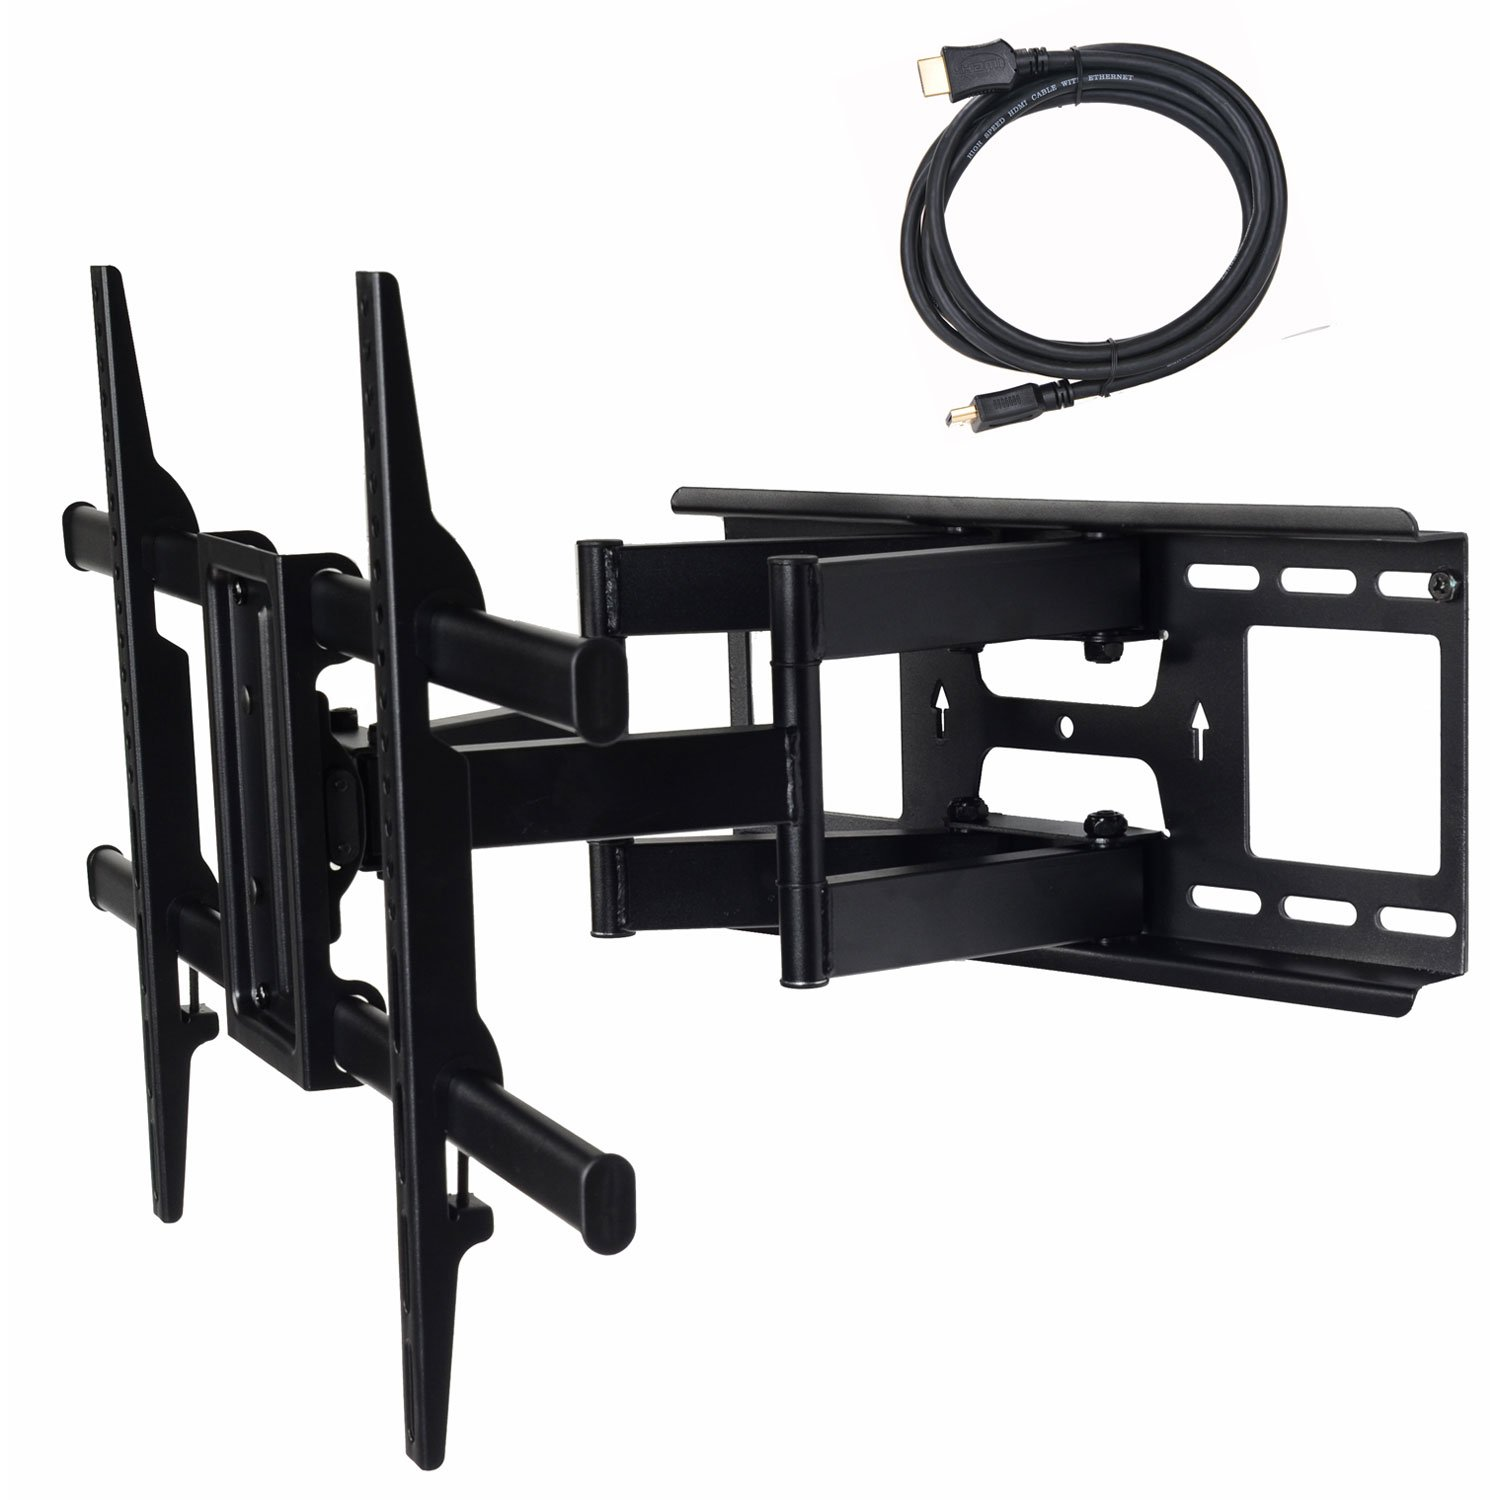 "VideoSecu MW380B3 Full Motion Articulating TV Wall Mount Bracket for Most 37""-75"" LED LCD Plasma HDTV up to 125 lbs with VESA 684x400 600x400 400x400 200x200mm, Dual Arm pulls Out up to 16"" AW8"